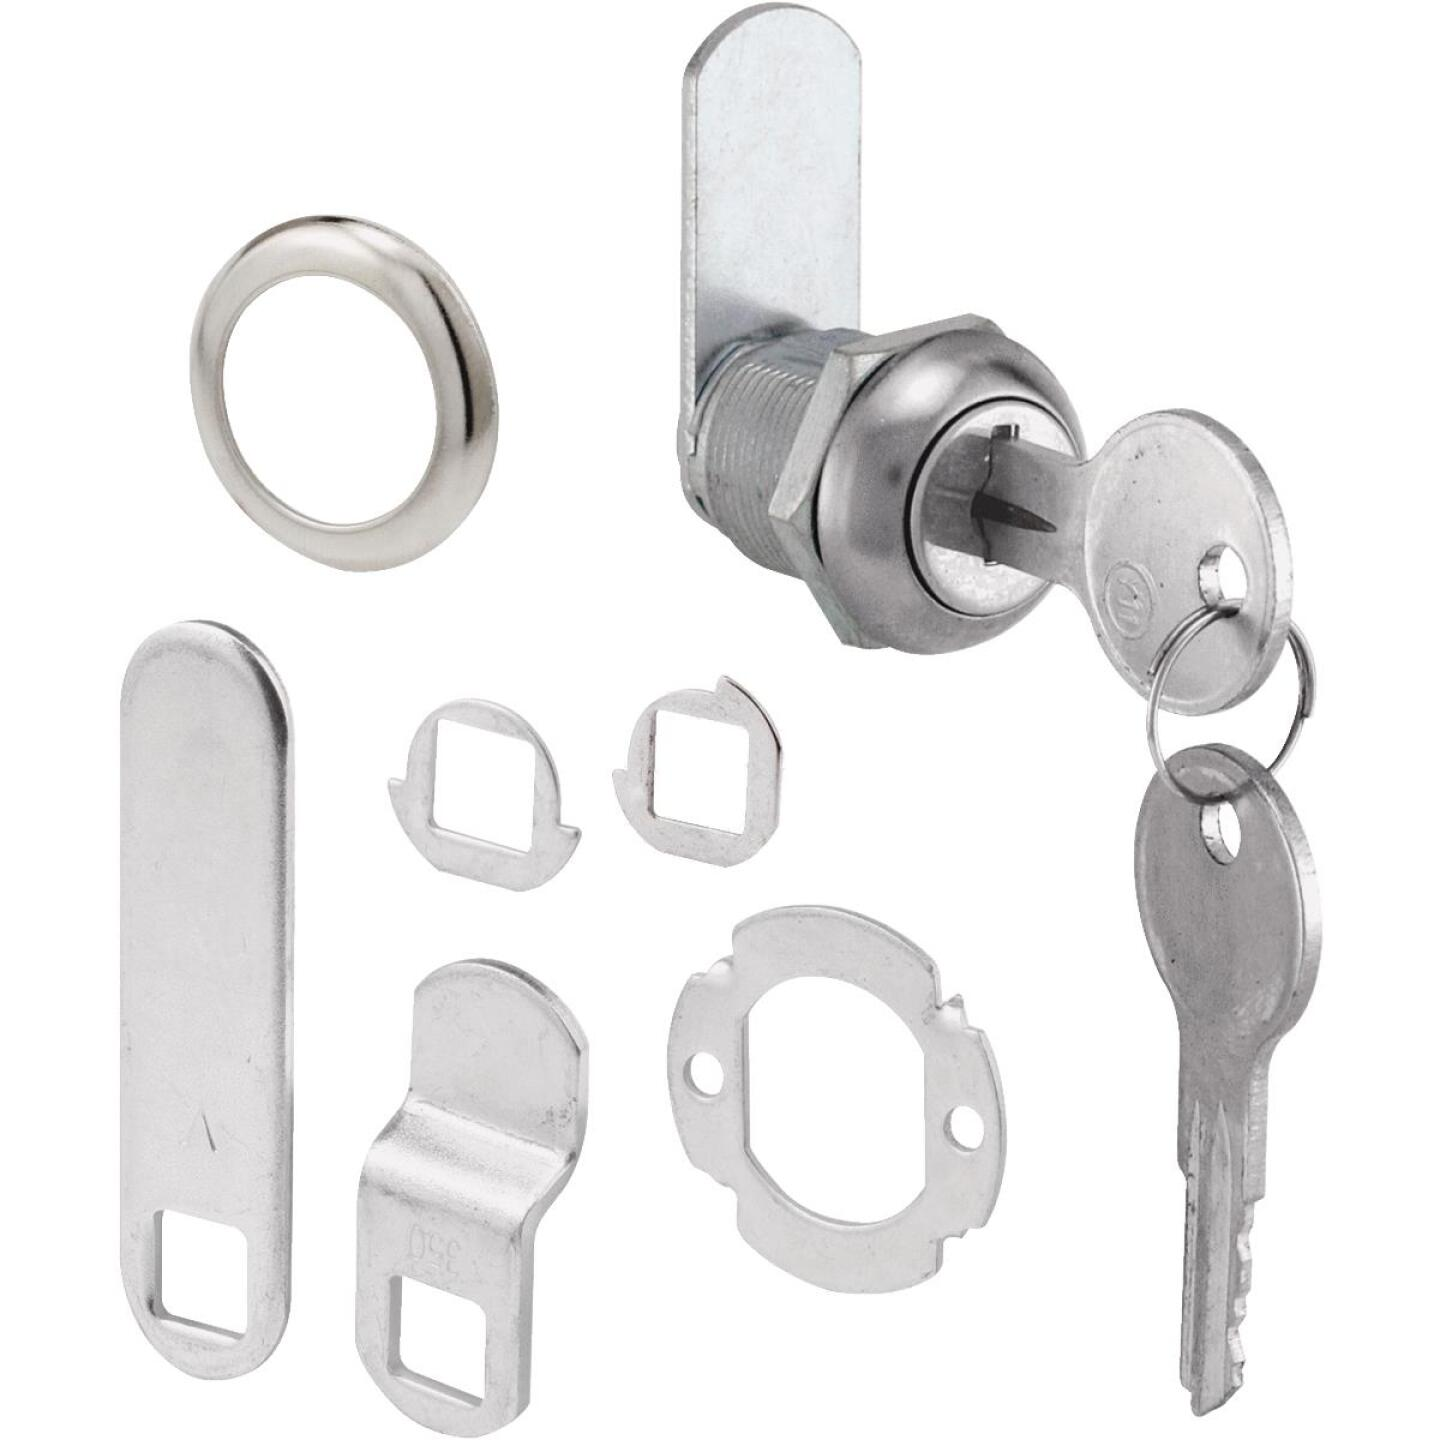 Defender Security 5/8 In. L. x 3/4 In. Dia. Drawer & Cabinet Lock Image 1